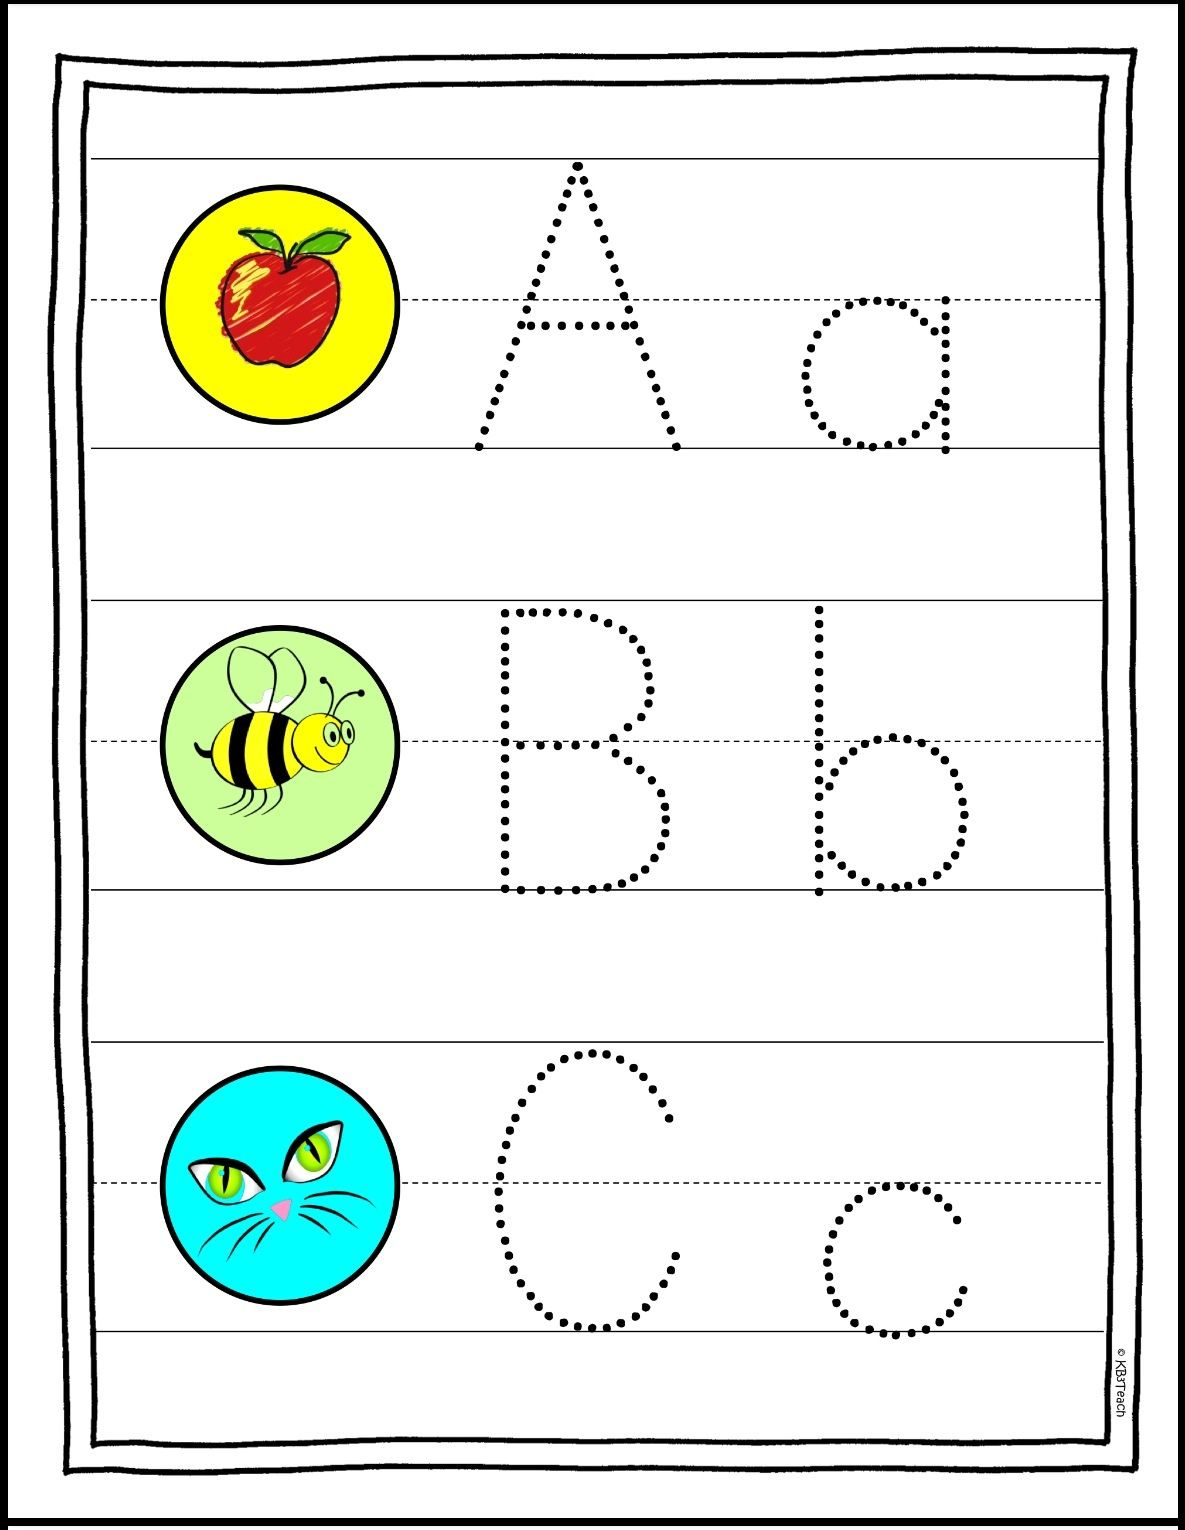 Handwriting Printables Write Trace Worksheets Teach Direct Letter Sound Correspondence While Handwriting Activities Alphabet Writing Handwriting Alphabet